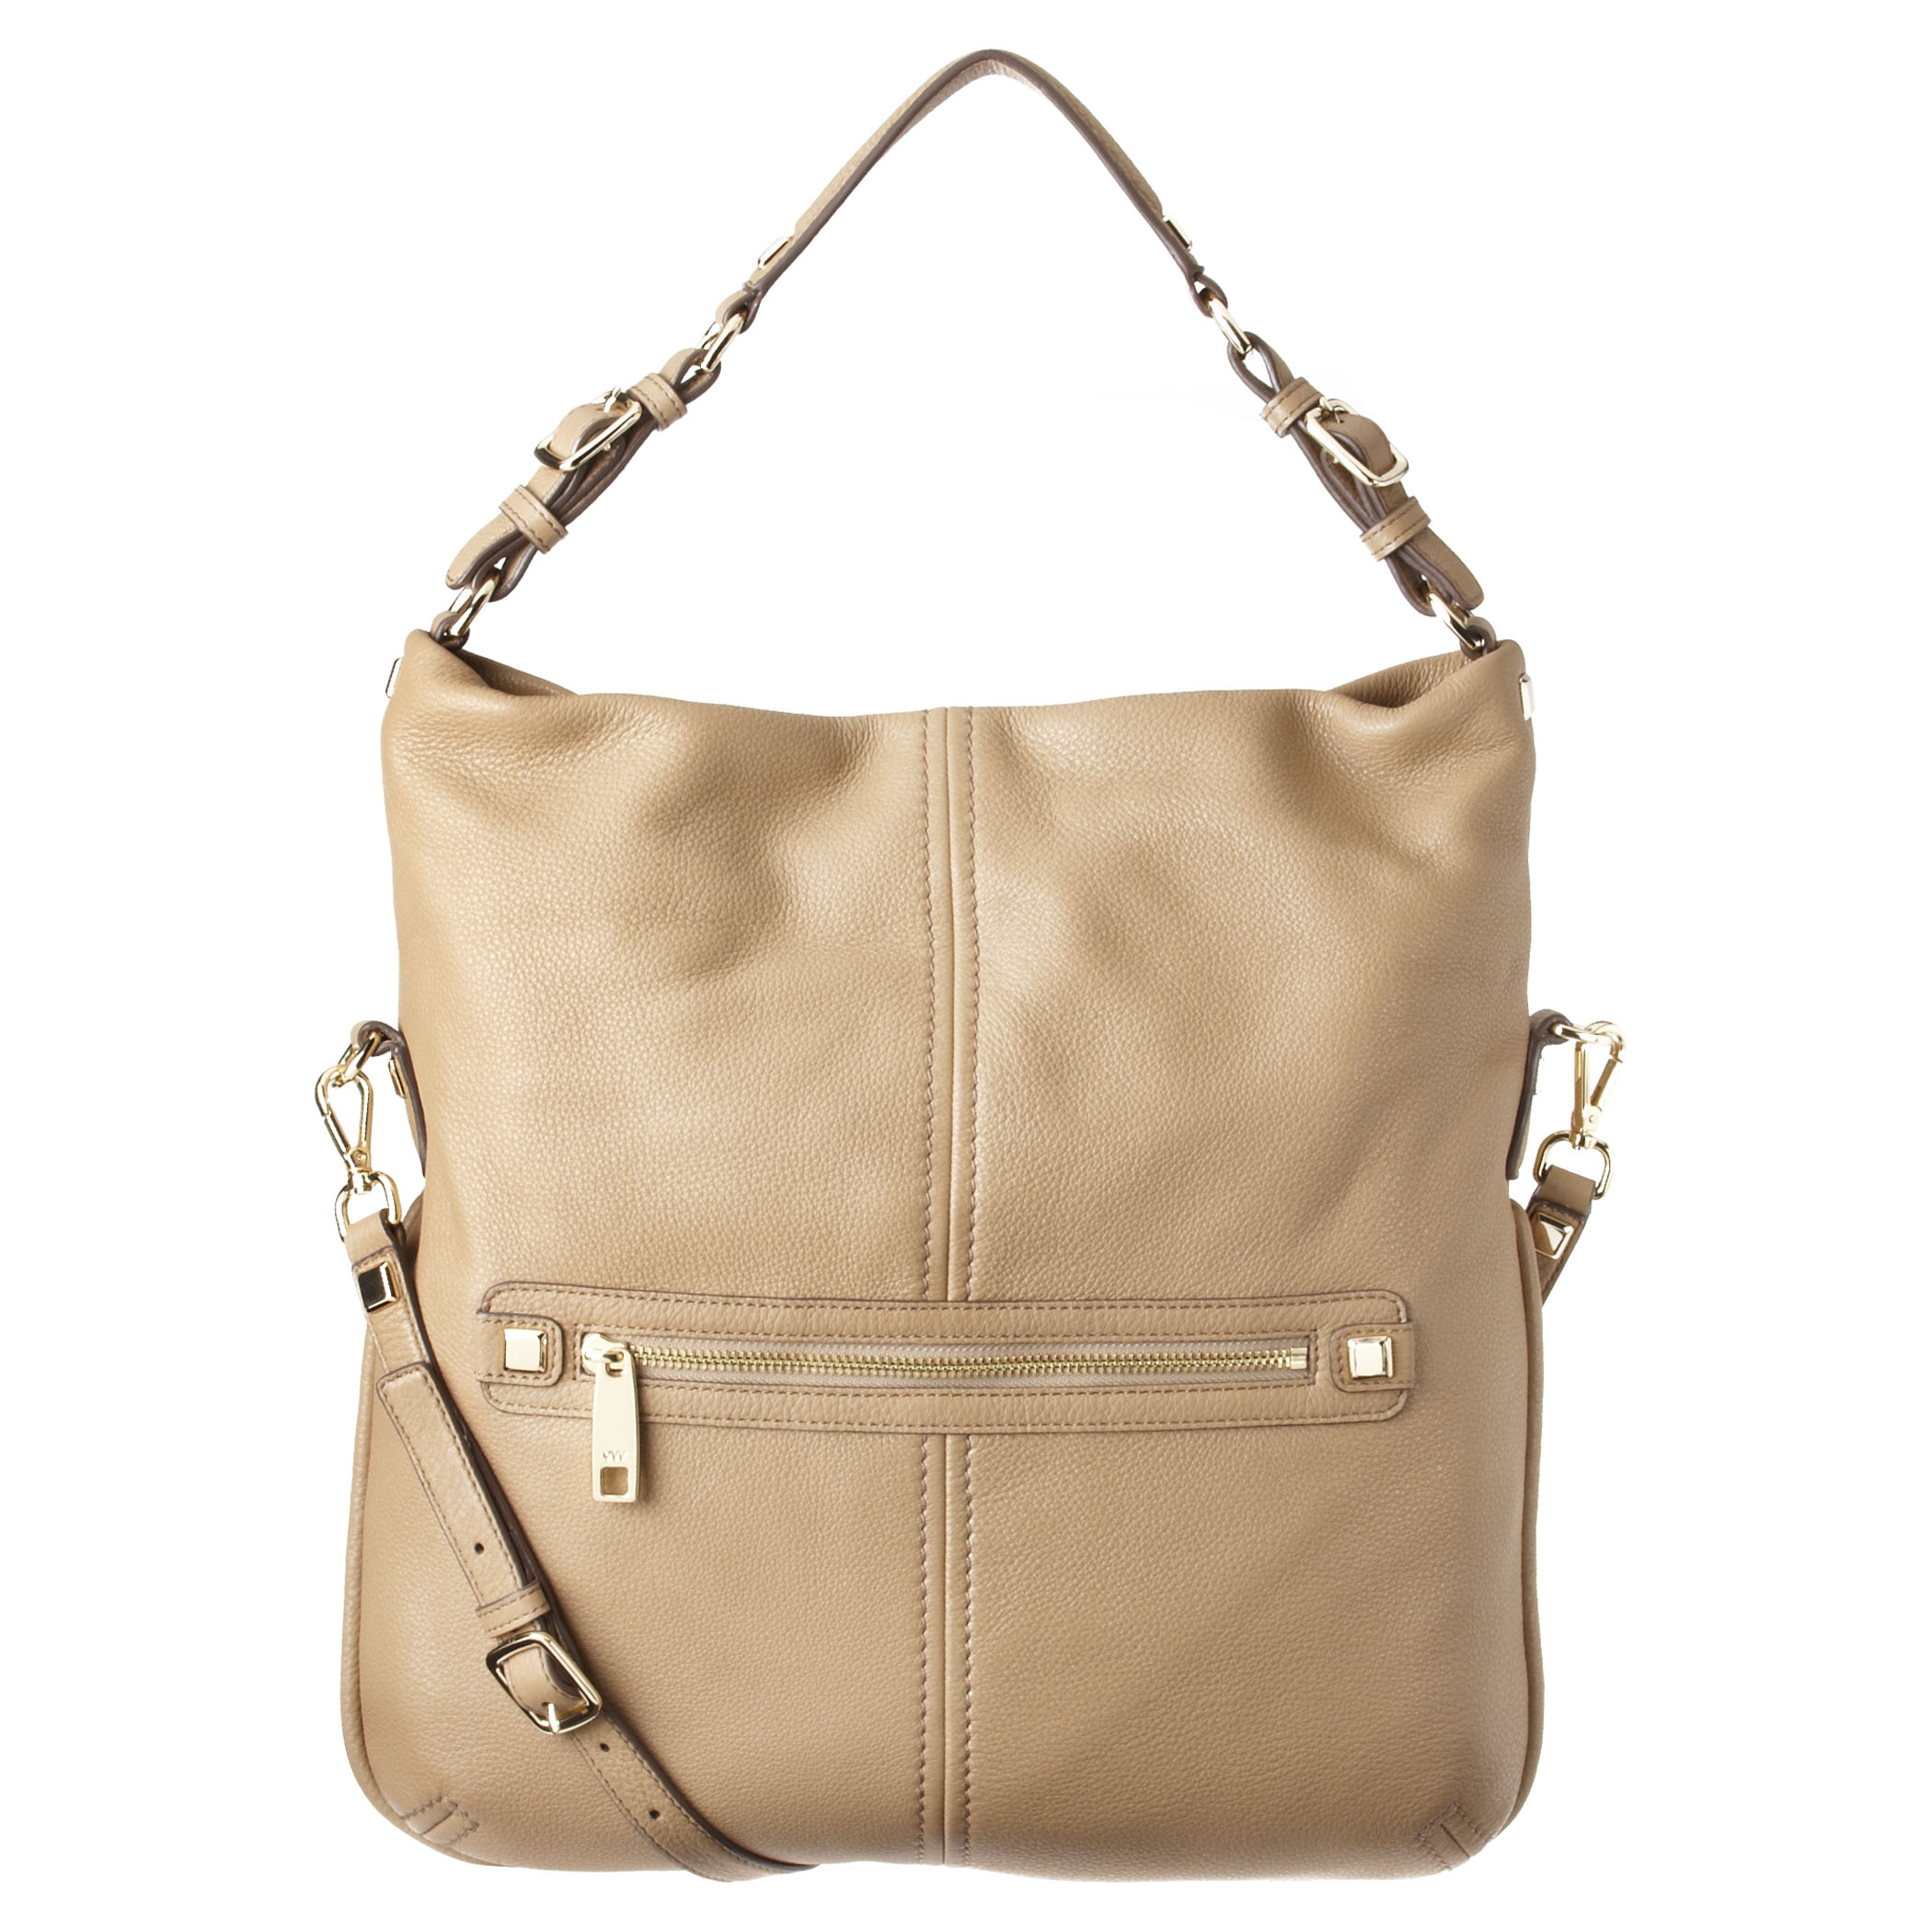 Nine West: Handbags & Accessories > All Handbags & Accessories > NOLITA LEATHER HOBO - HOBO